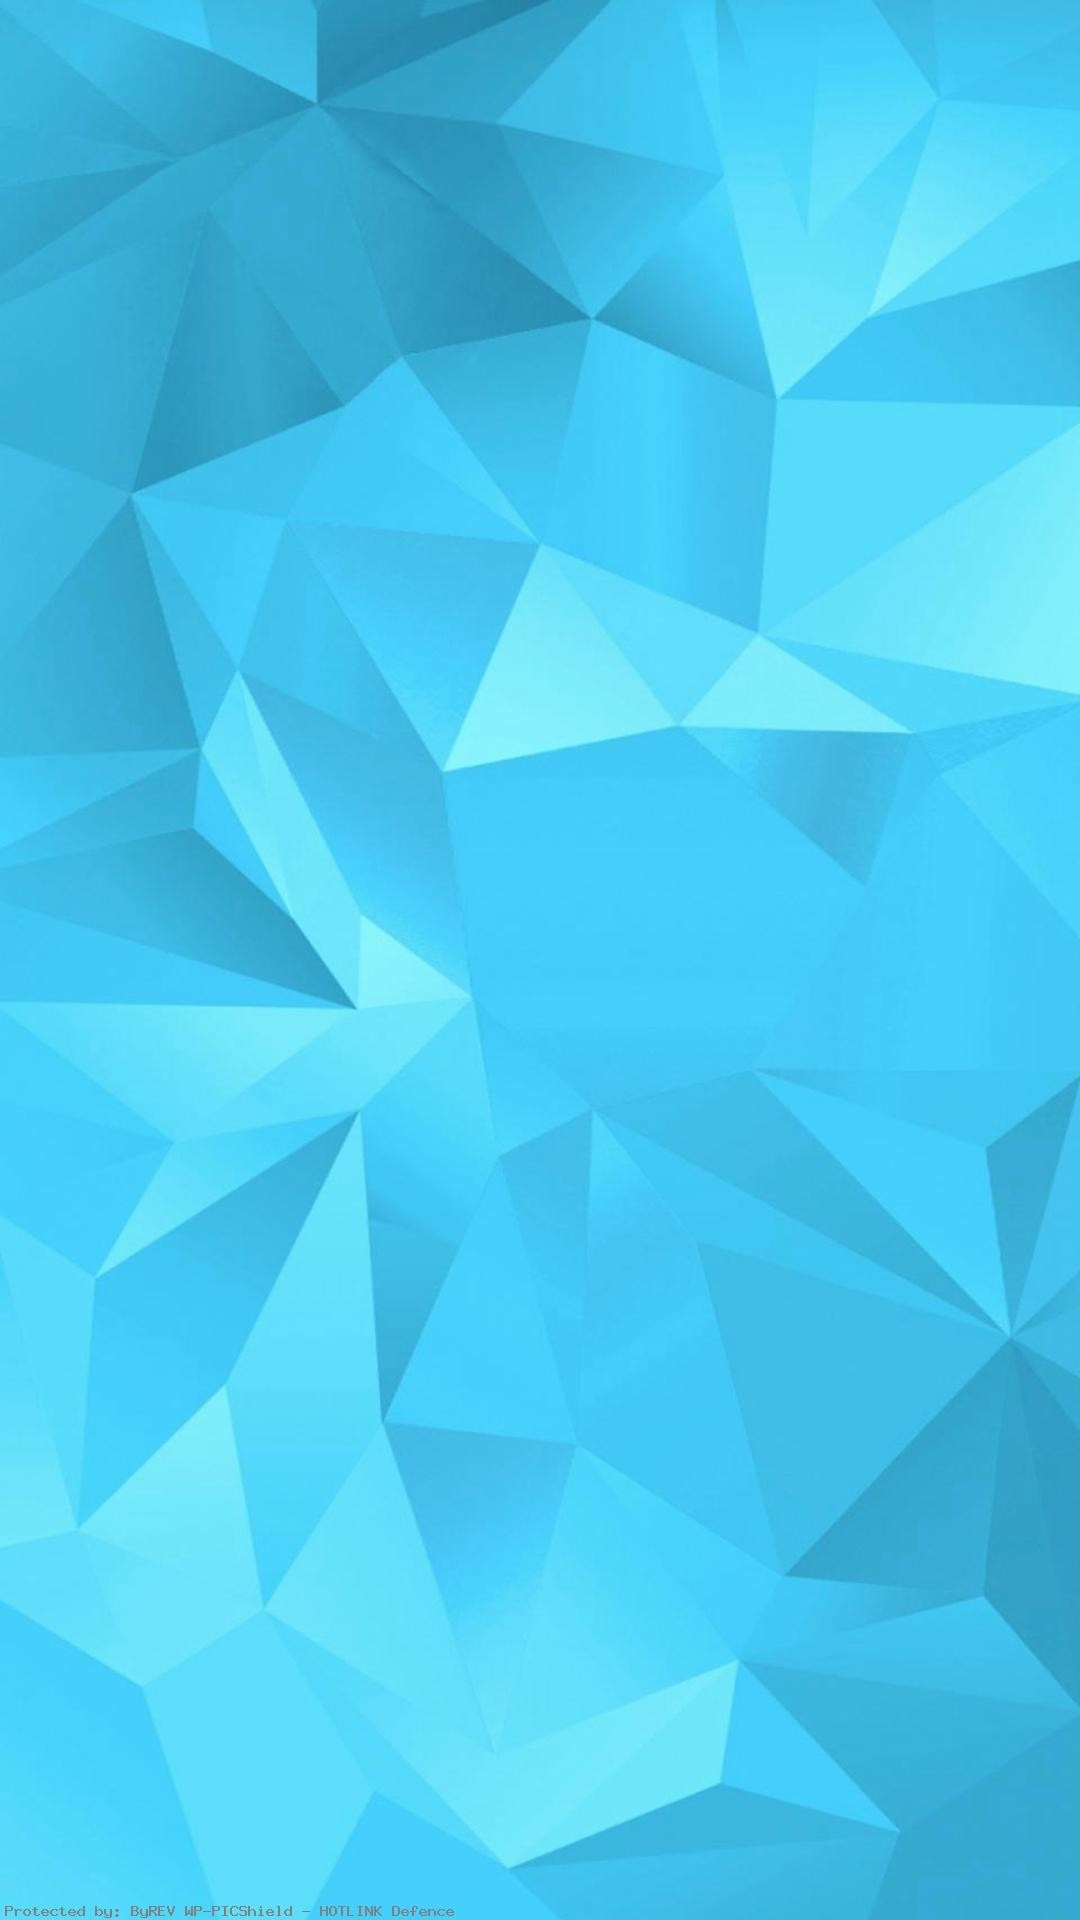 1080x1920 Simple-Blue-Fold-Polygon-Pattern-iPhone-plus-wallpaper-